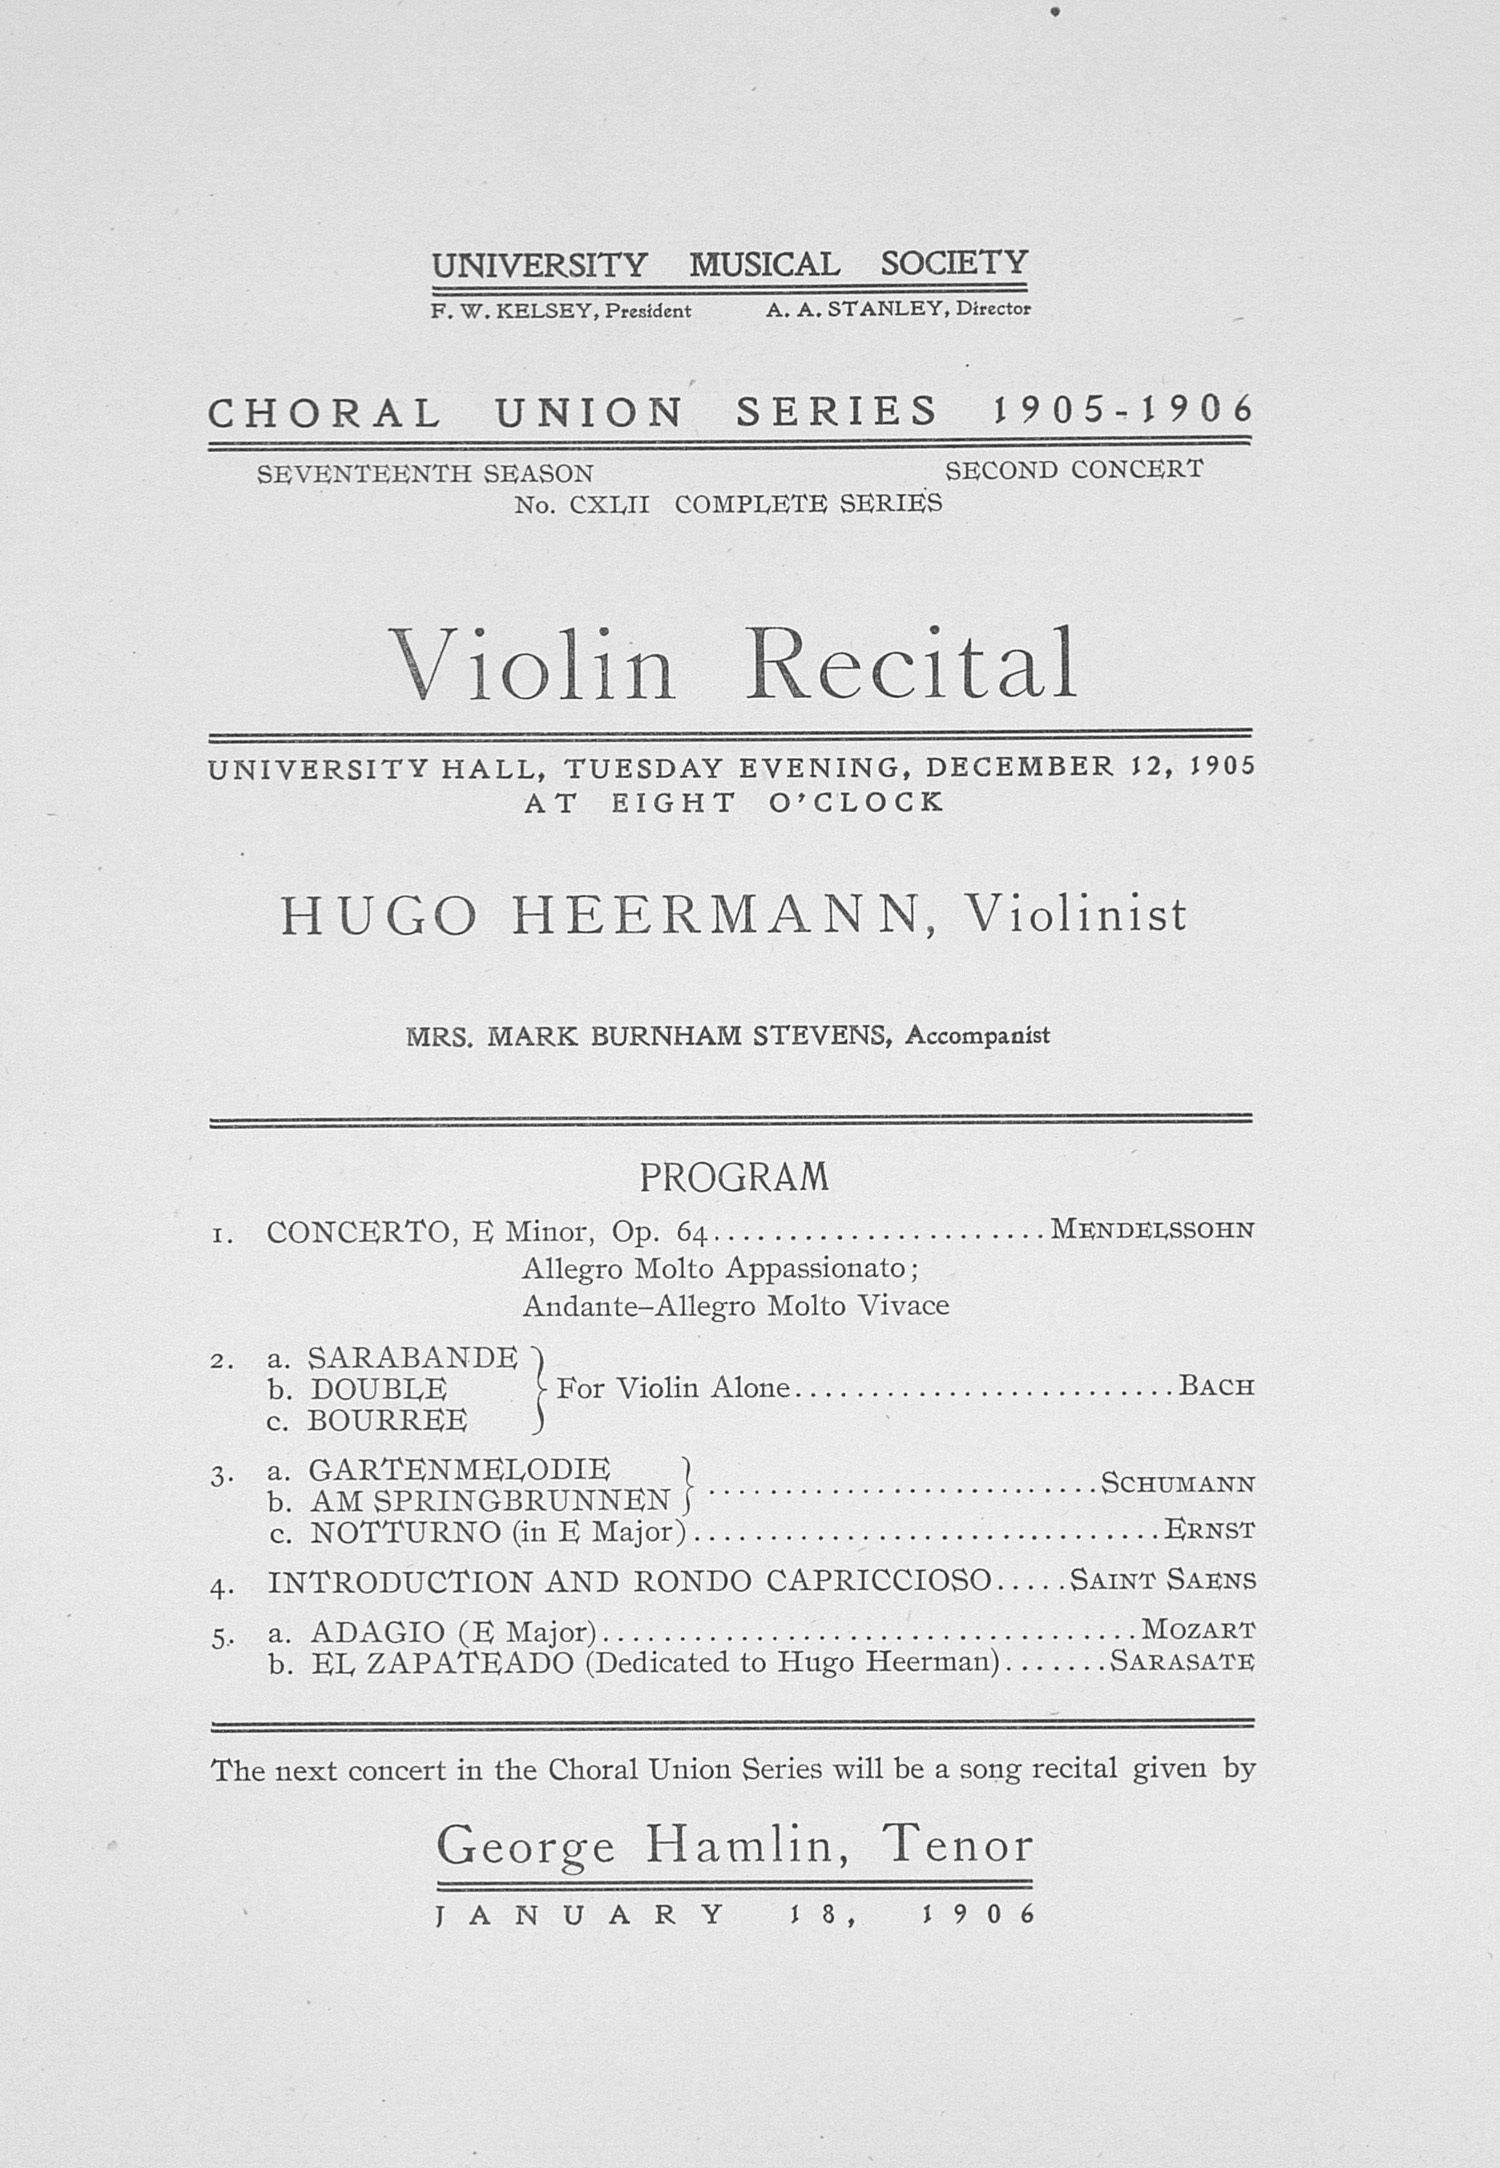 UMS Concert Program, December 12, 1905: Choral Union Series -- Violin Recital image